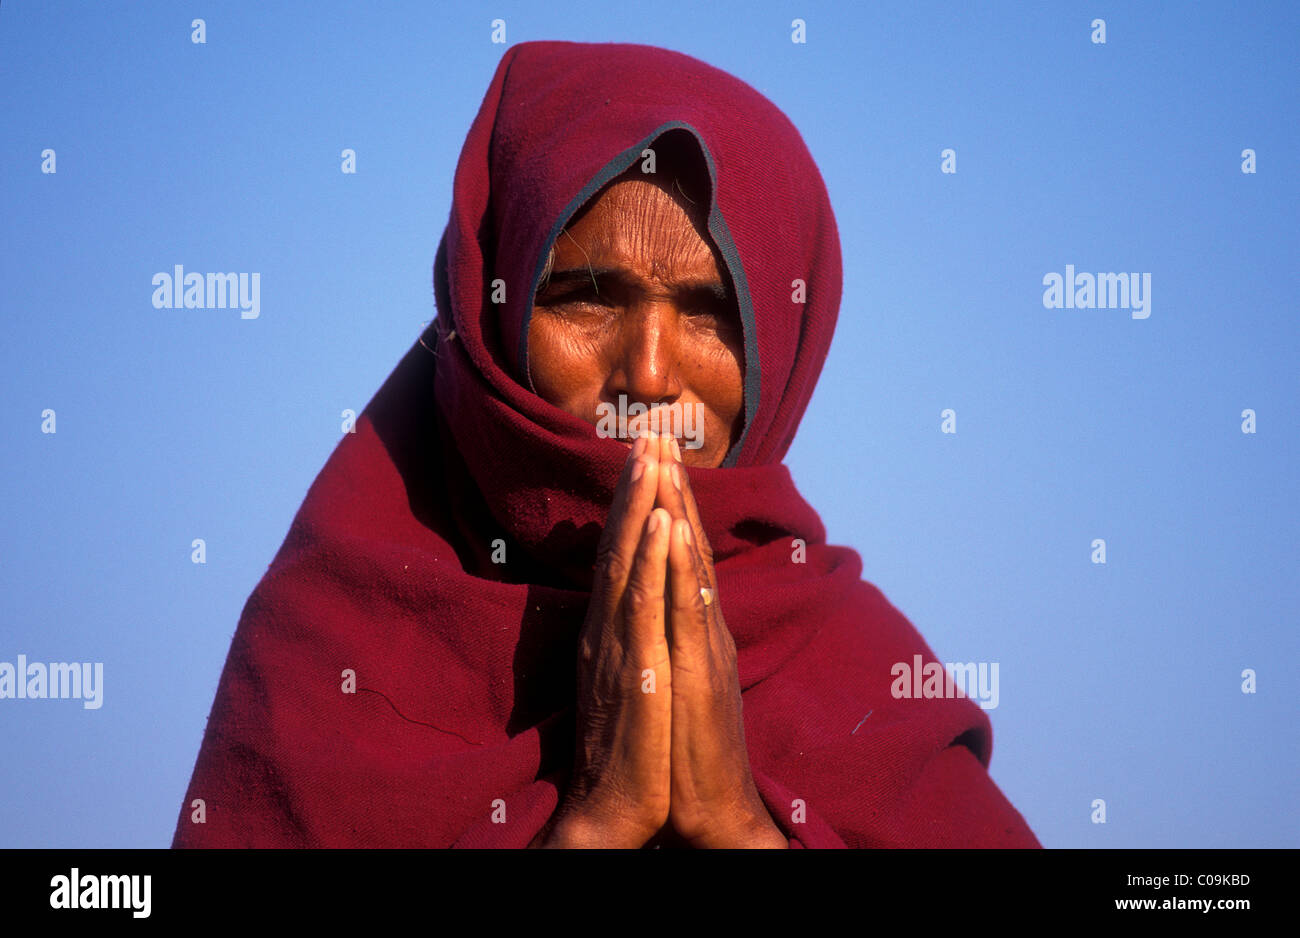 Woman greeting with clasped hands, Namaste salutation, Thar Desert, Rajasthan, India, Asia - Stock Image